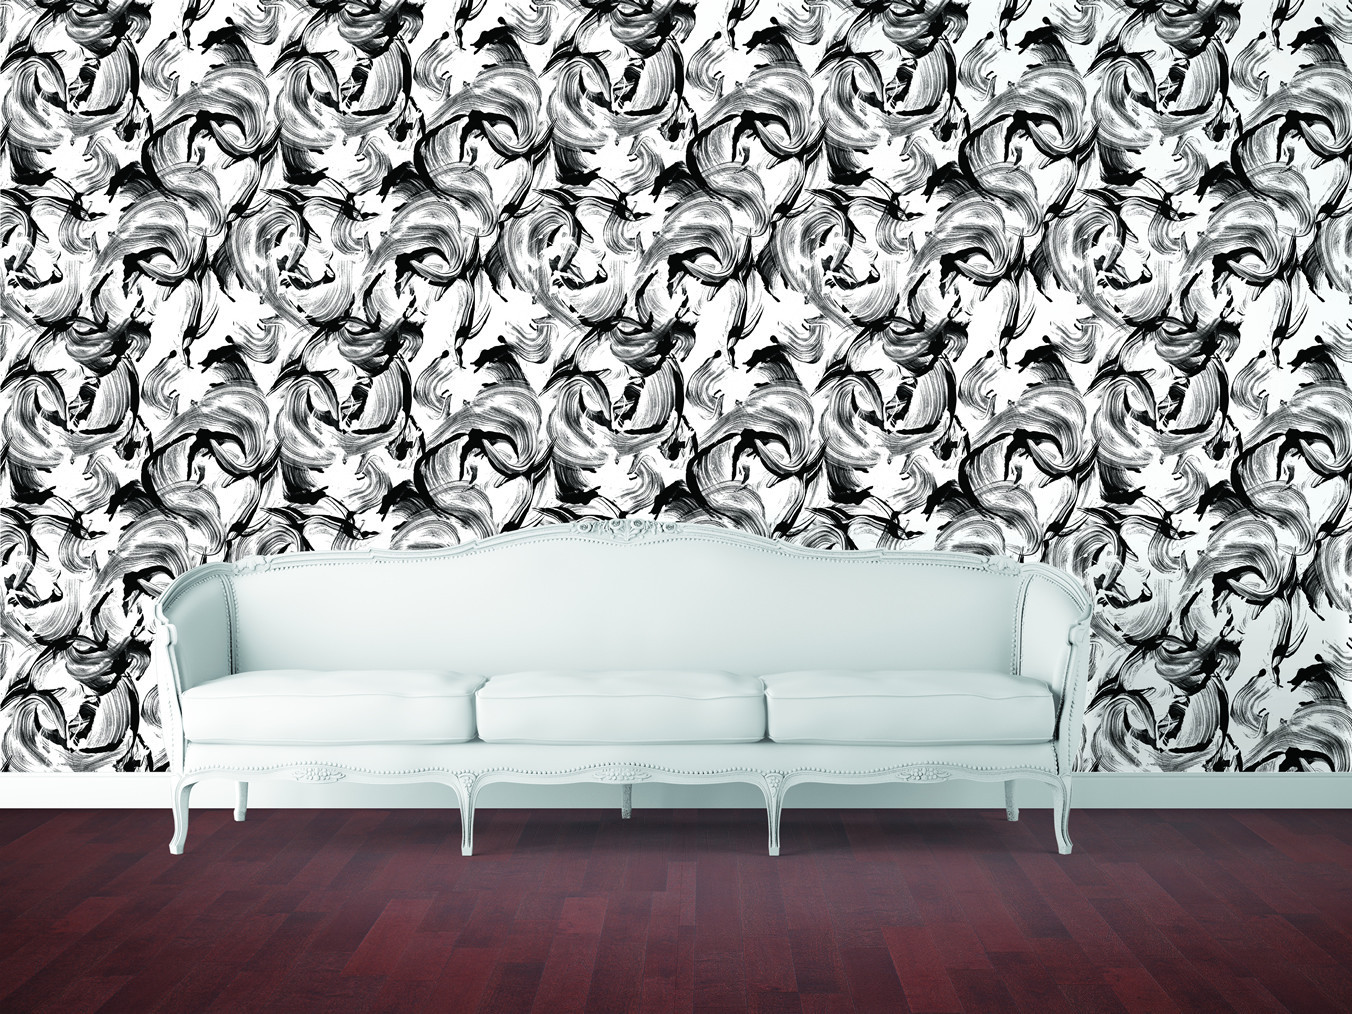 Amour Self Adhesive Wallpaper in White and Black design by tempaper wallpaper matched with brown wooden floor plus white sofa for interesting living room decor ideas